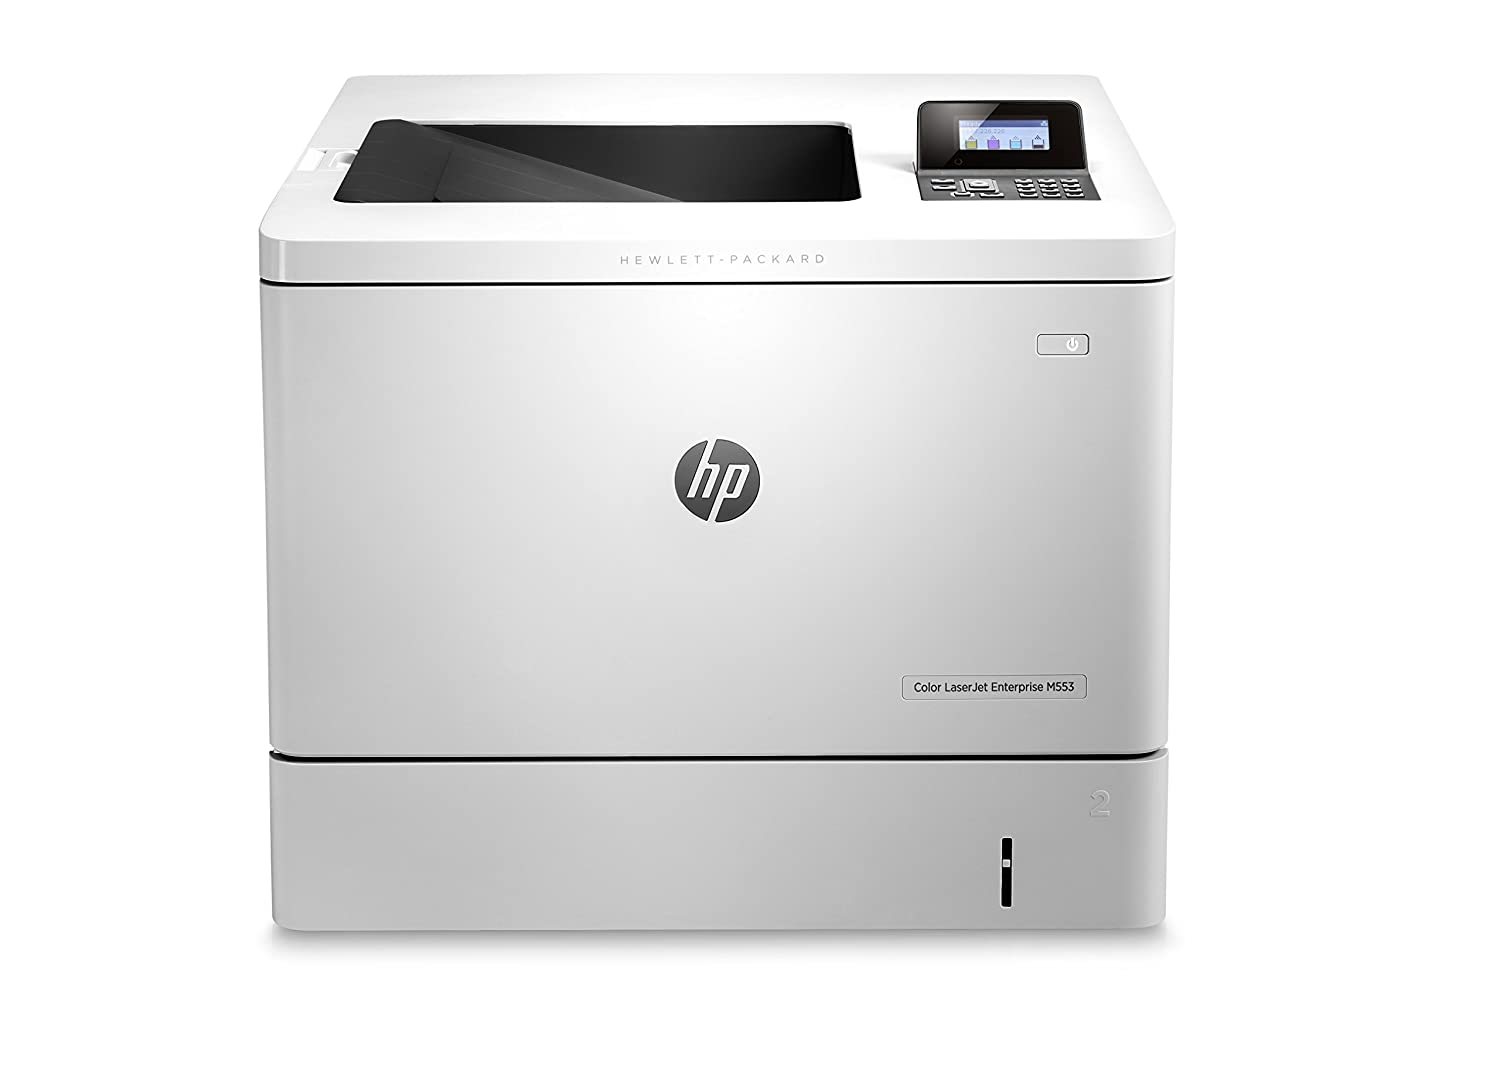 Top 9 best printers for Mac, iPad & iPhone (2020 Reviews & Buying Guide) 4